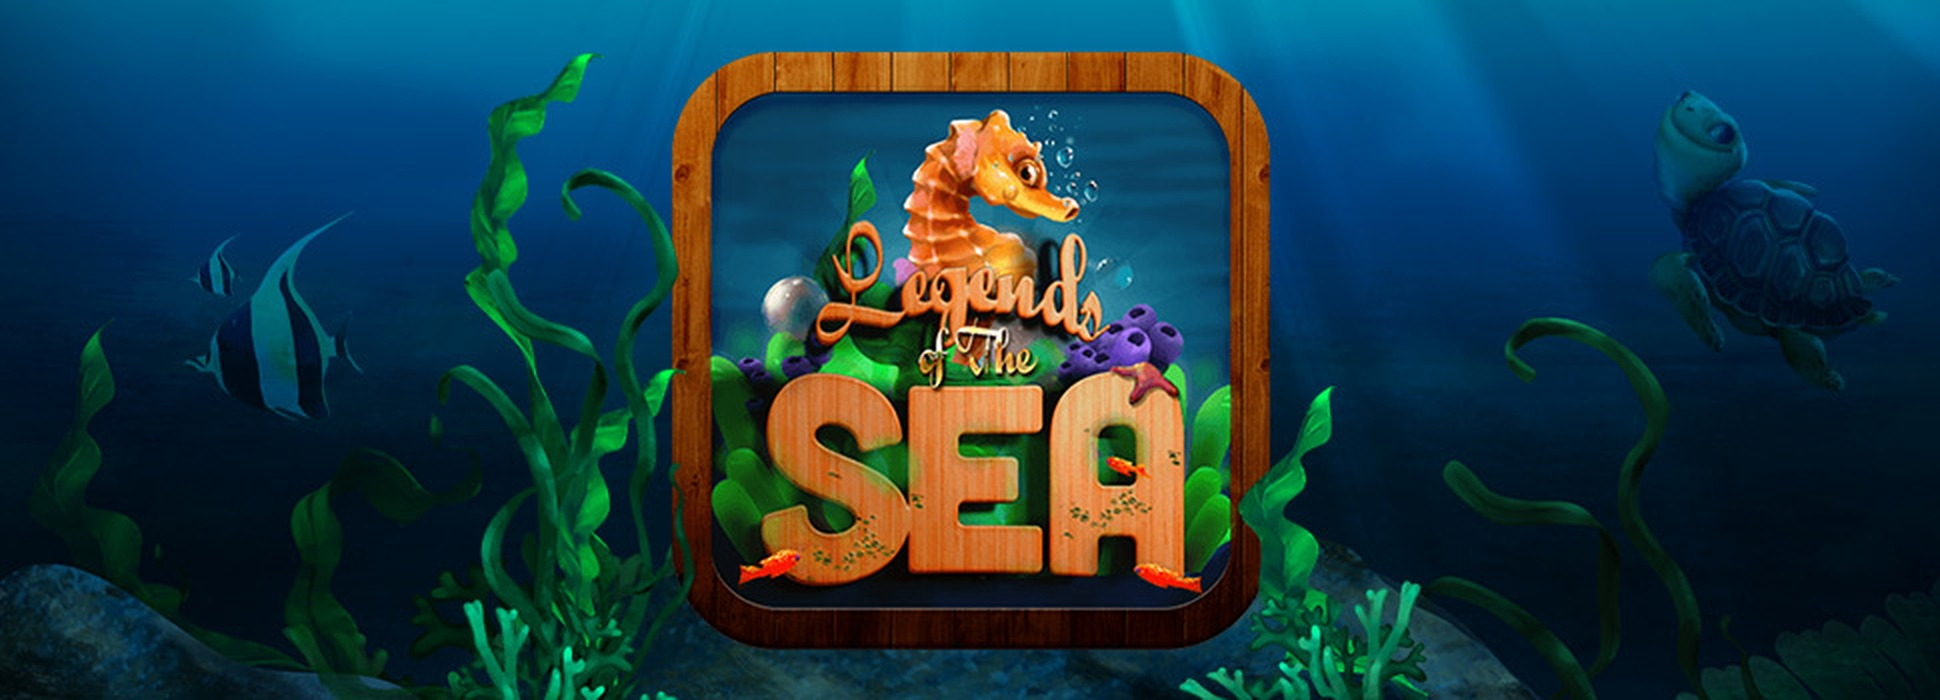 The Legends of the Sea (Mobilots) Online Slot Demo Game by Mobilots